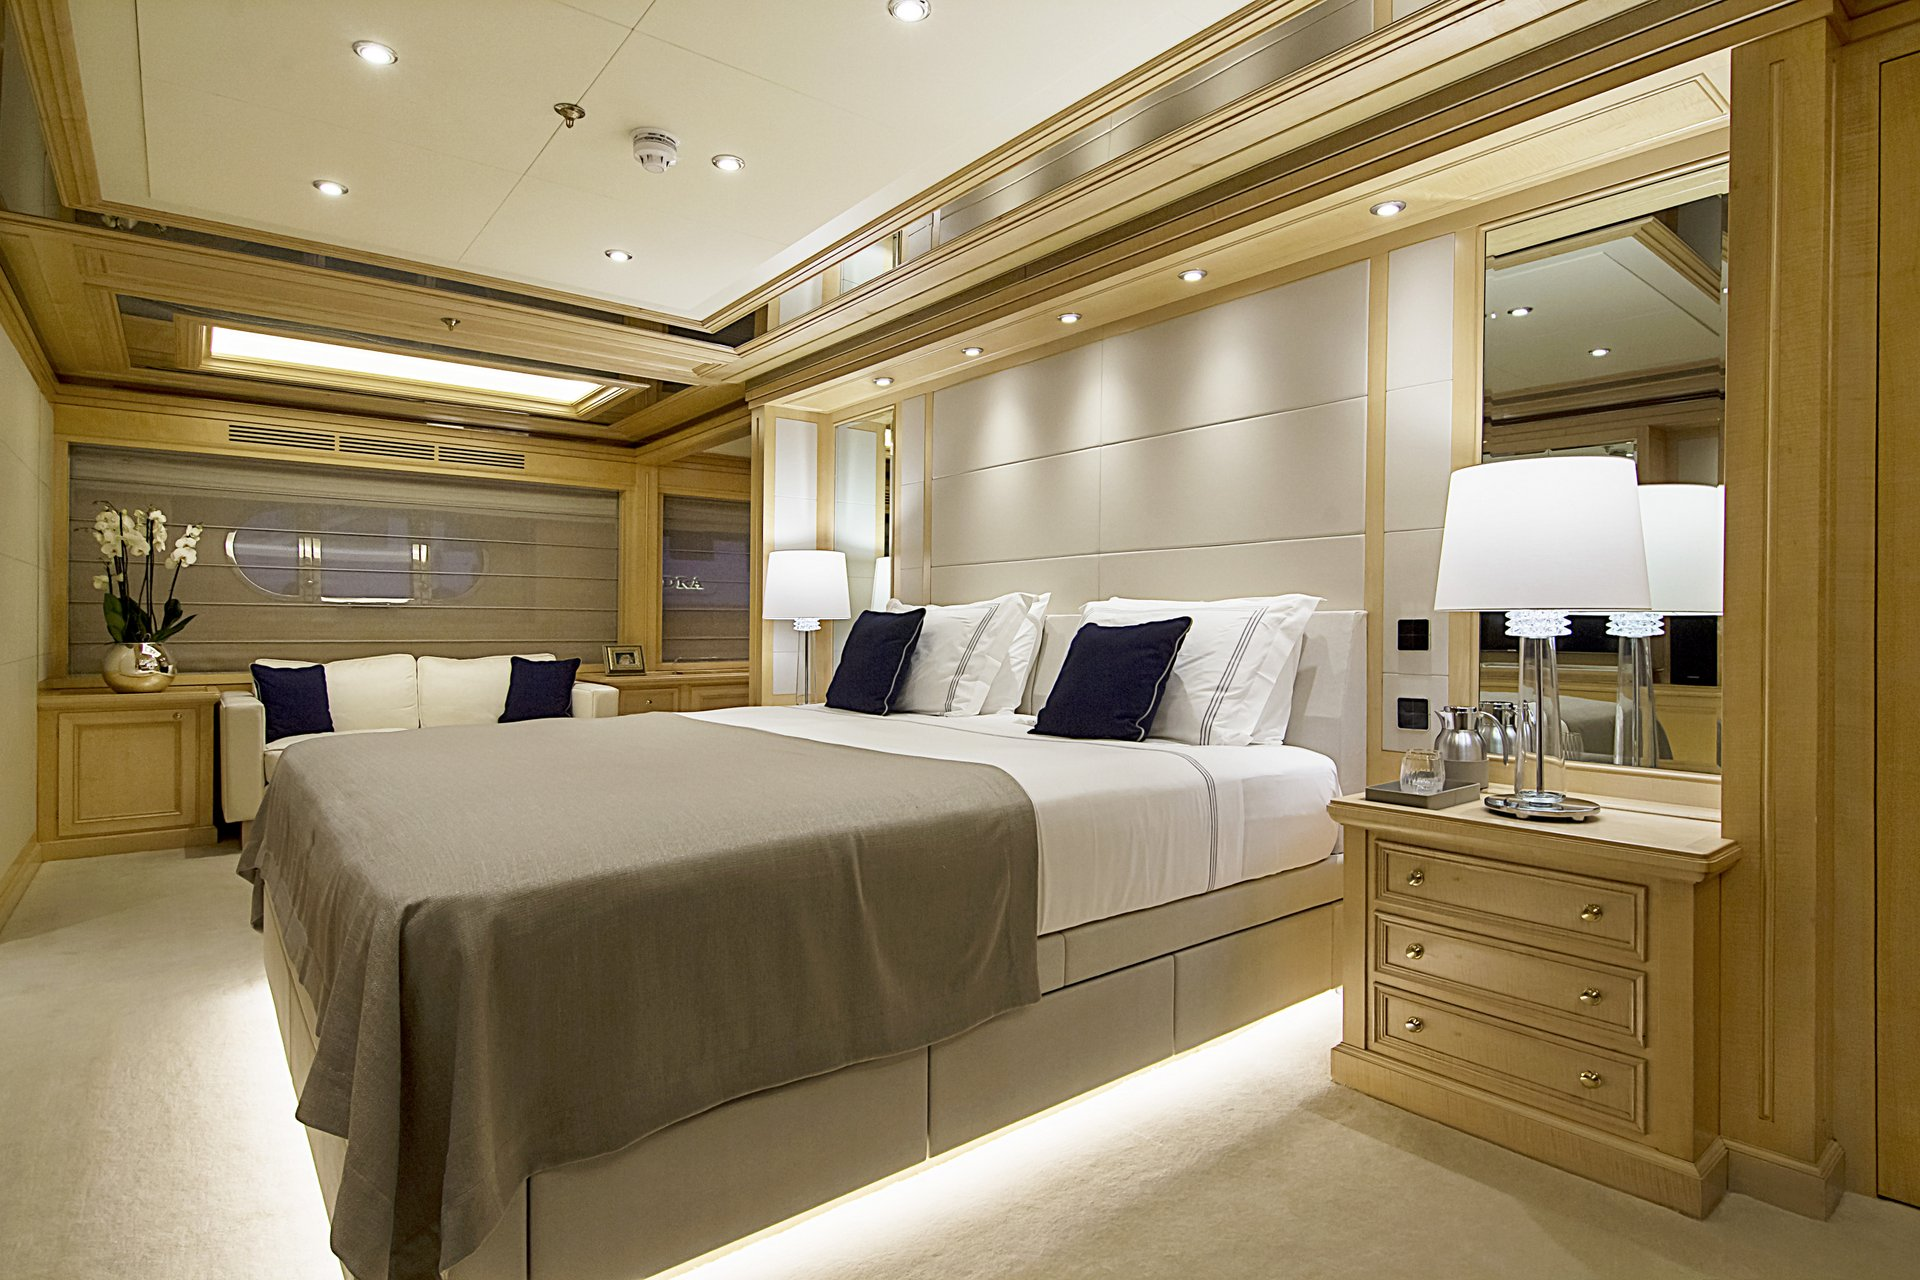 m/y invader yacht for charter luxury cabin